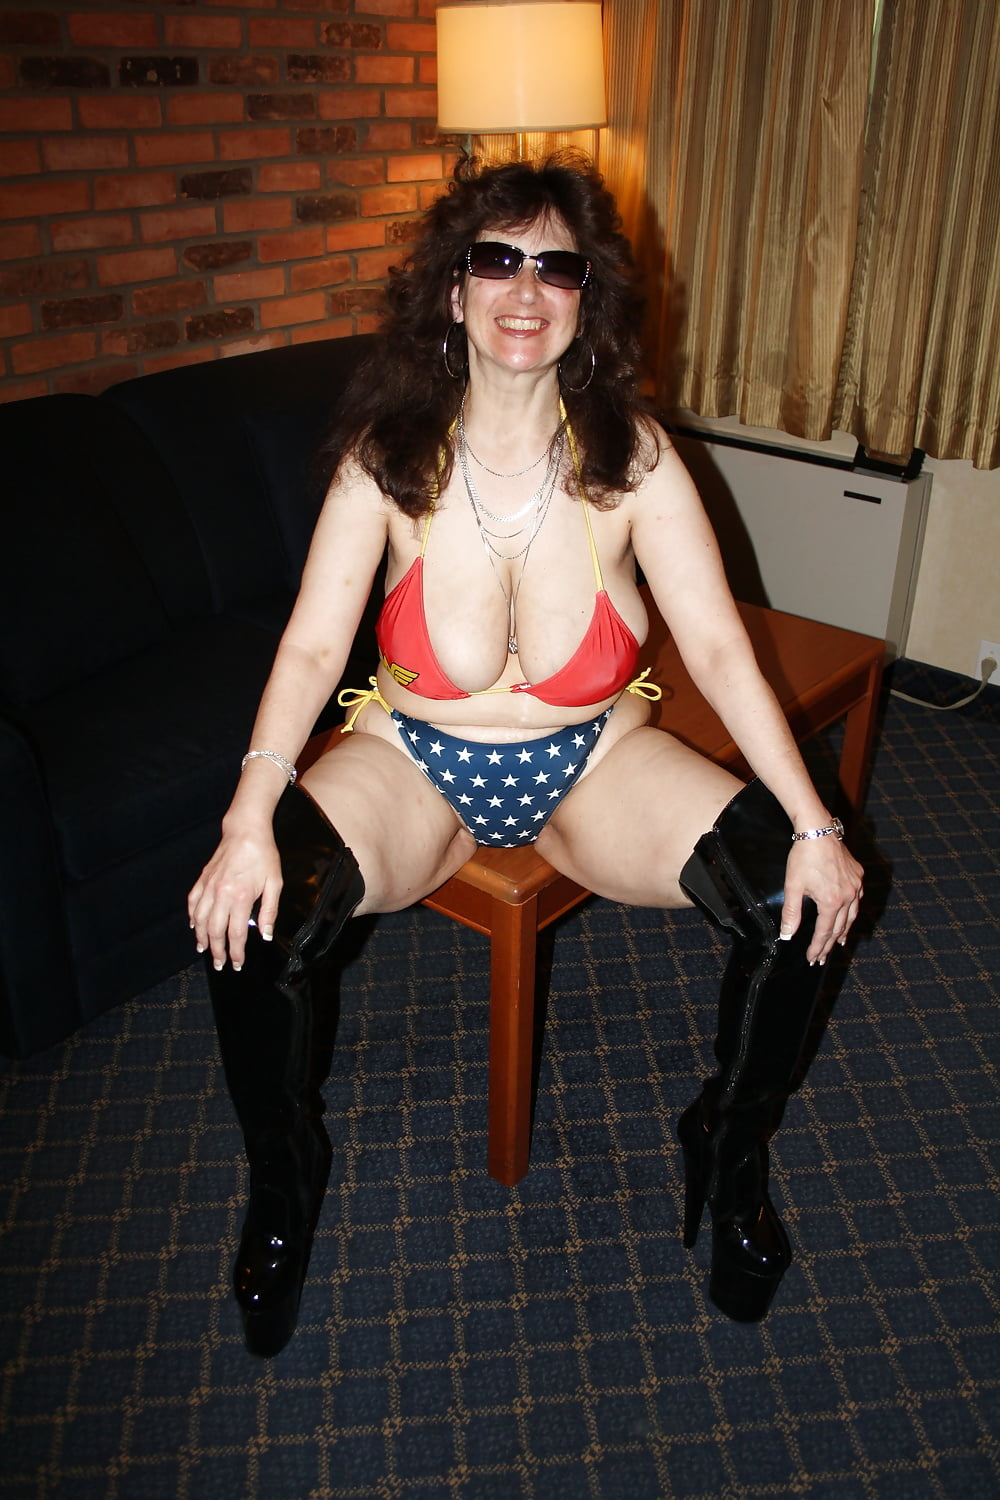 How old is wonder woman